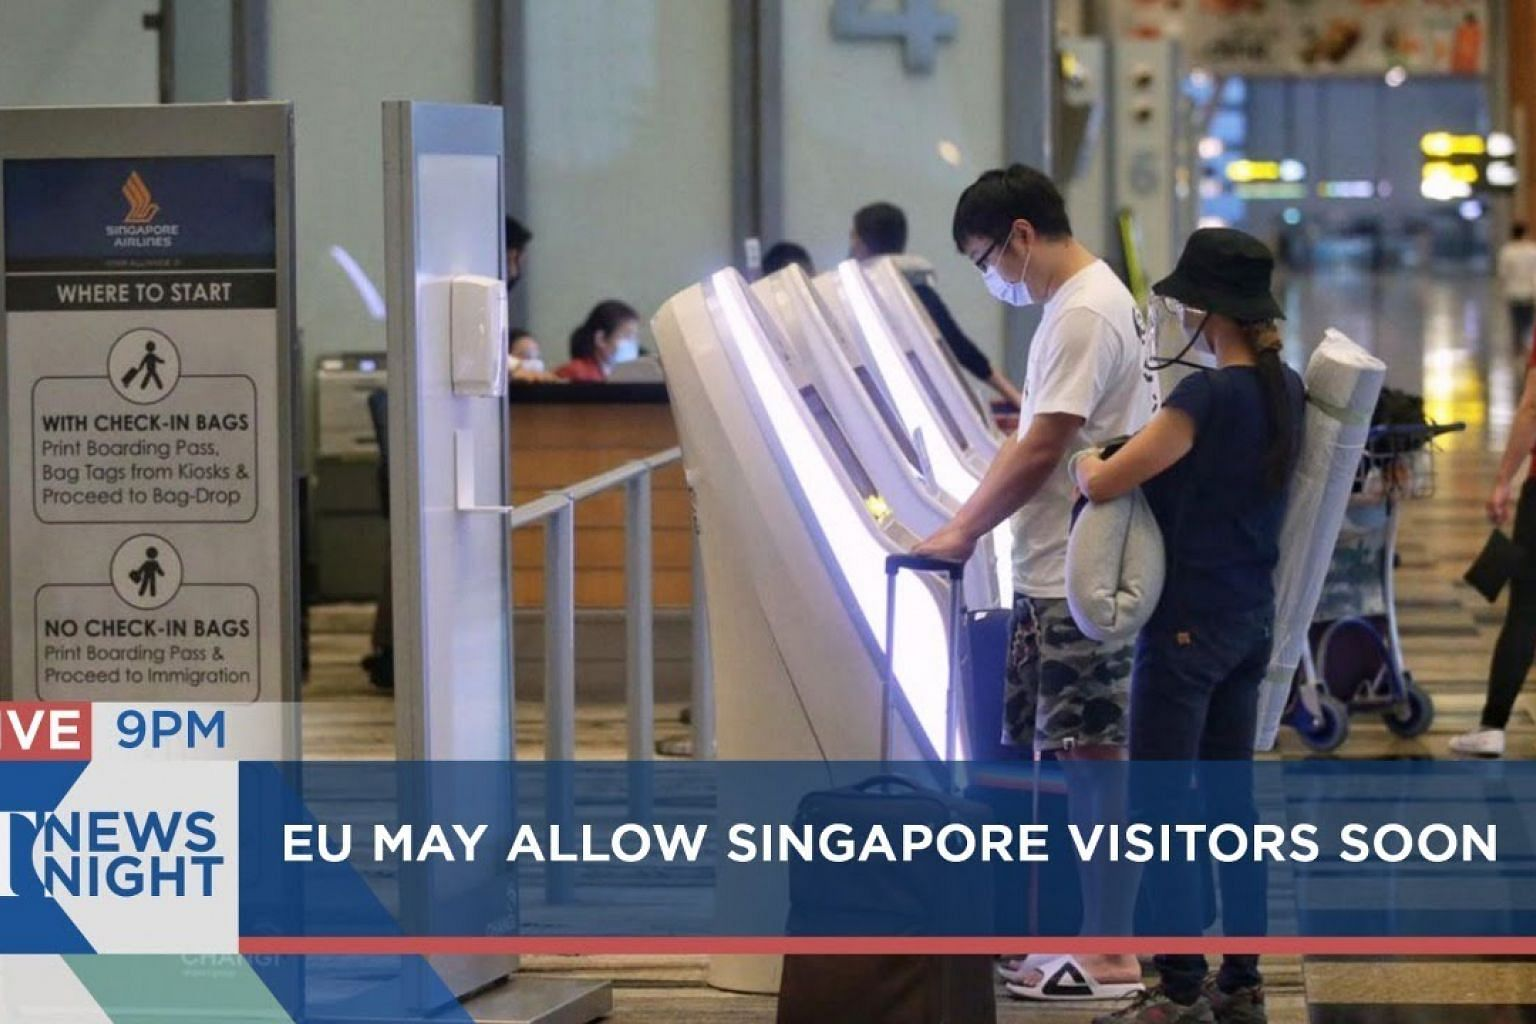 EU may allow Singapore visitors soon | NASA's mission success | ST NEWS NIGHT